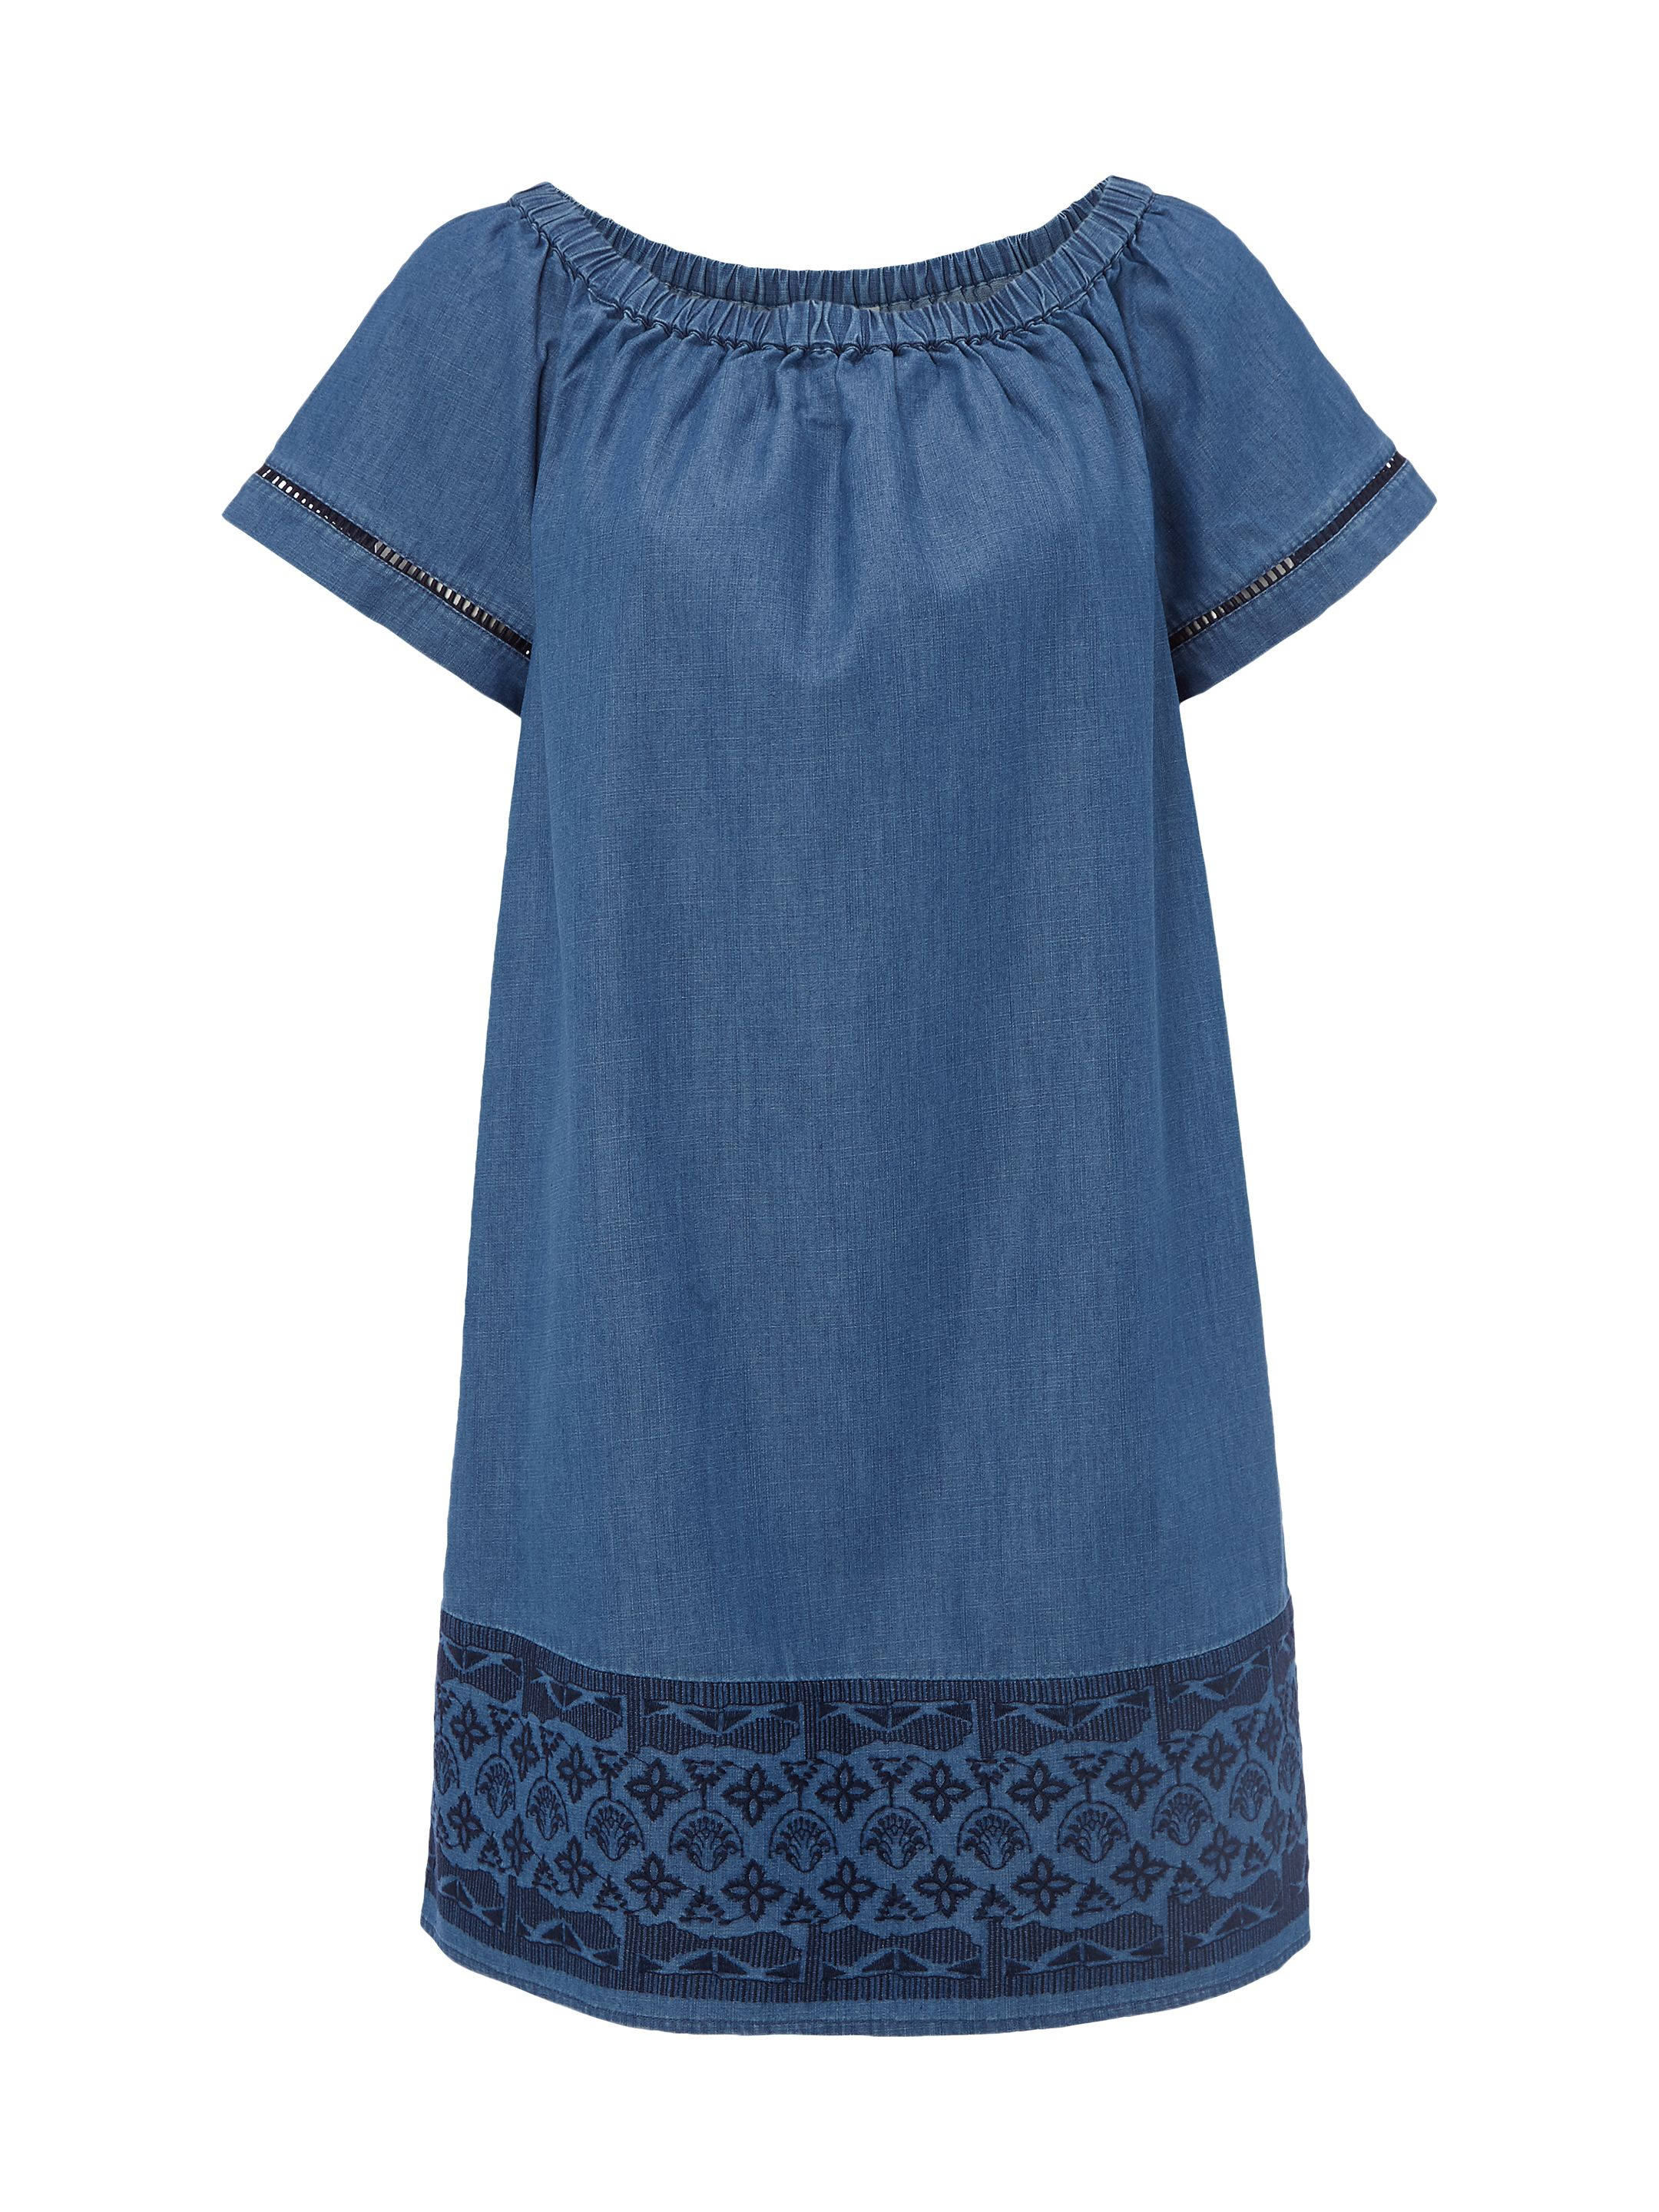 White Stuff Aspen Bardot Dress, Denim